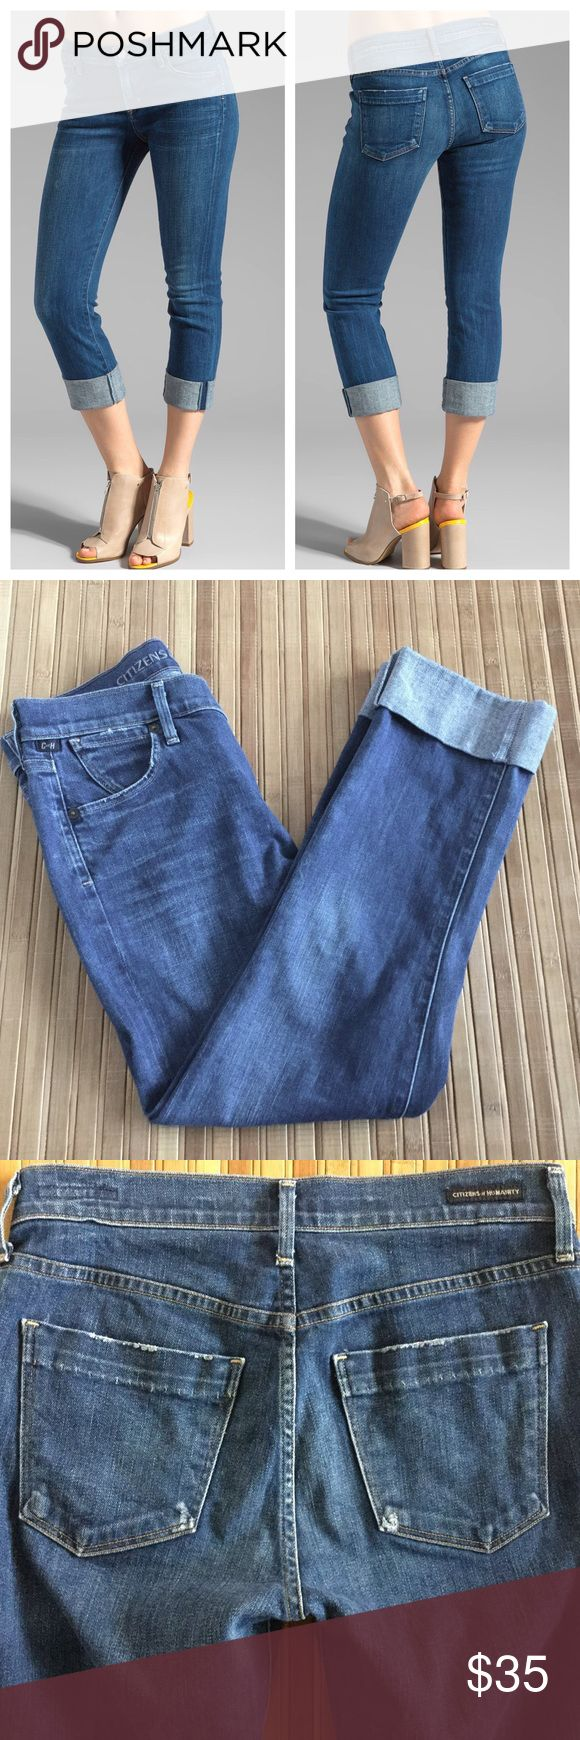 """Citizens of Humanity Dani Crop Straight Leg Jeans Size 26 (XS or 2). Zip fly with button closure, tacked cuffs.  Approximate measurements - 14 1/2"""" across waist band, 23"""" inseam, 14"""" leg opening, 9"""" front rise, 13 1/2"""" back rise.  Cotton/elastane.  Machine wash.  In gently used pre-owned condition.  It has been washed.  No trades. Citizens of Humanity Jeans Ankle & Cropped"""